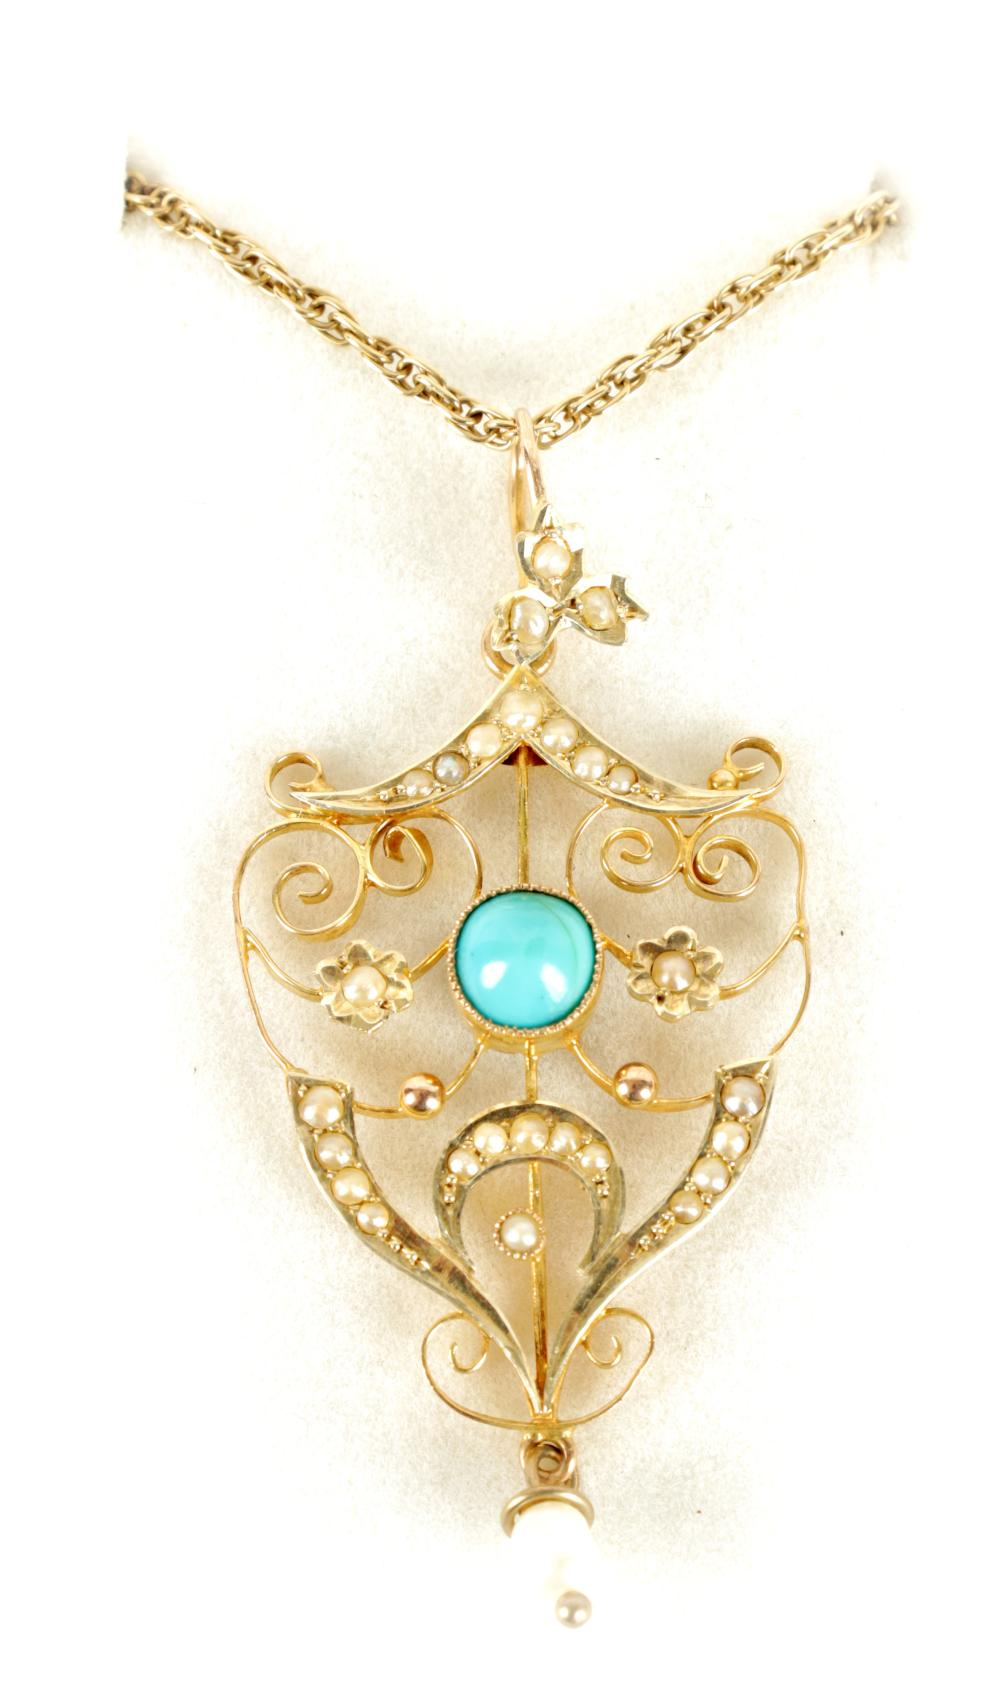 A LADIES 9CT GOLD PEARL AND TURQUOISE PENDANT ON 9CT GOLD NECKLACE